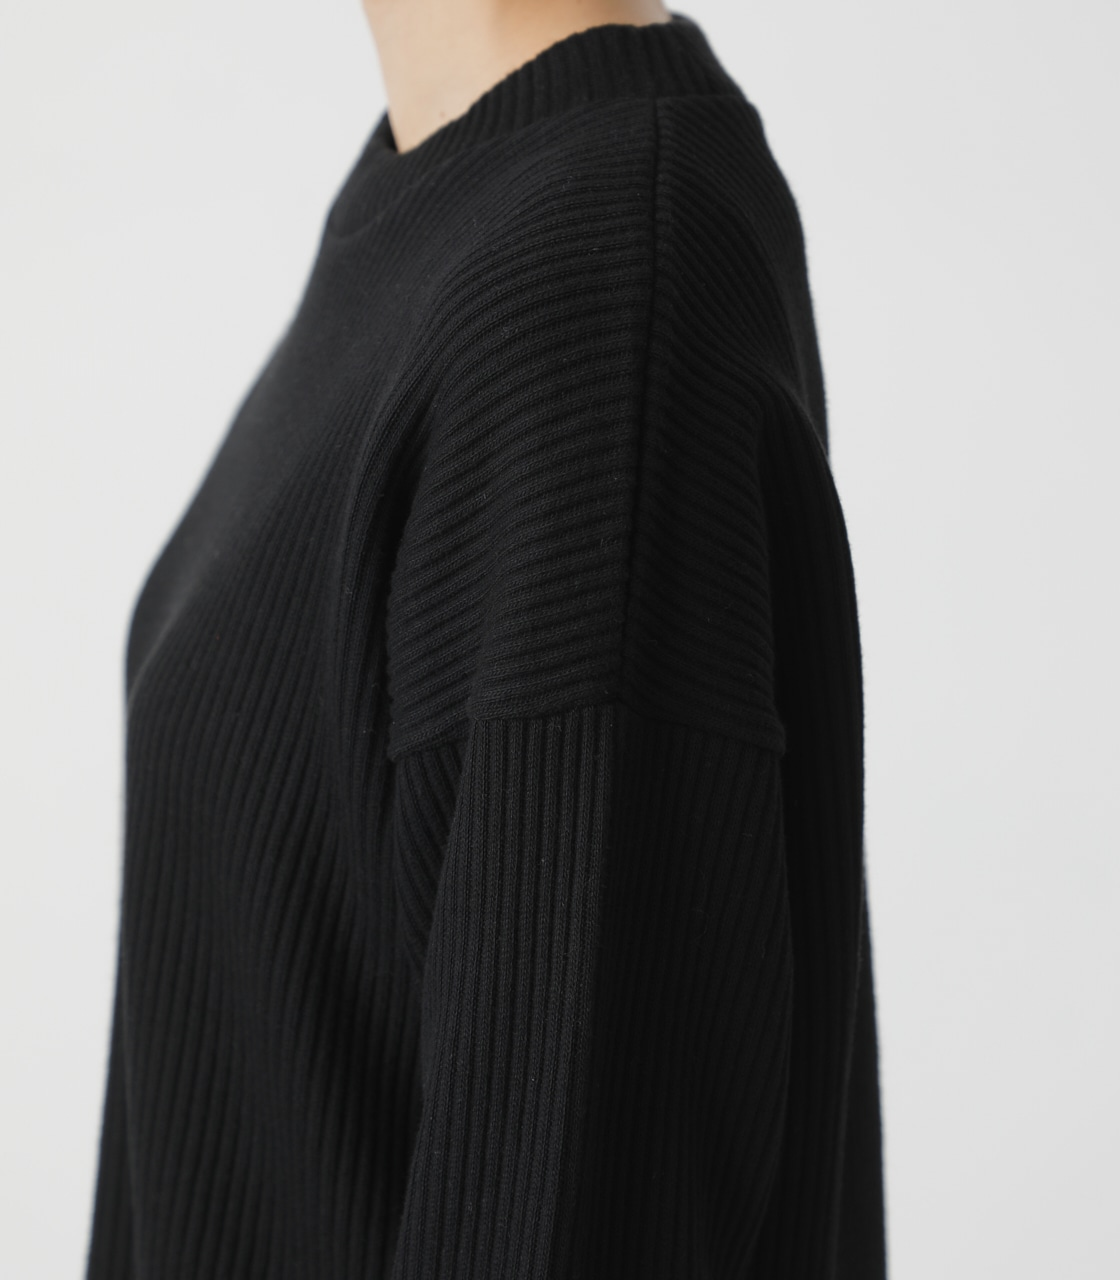 T/H SIDE SLIT LONG TOPS/T/Hサイドスリットロングトップス 詳細画像 BLK 9